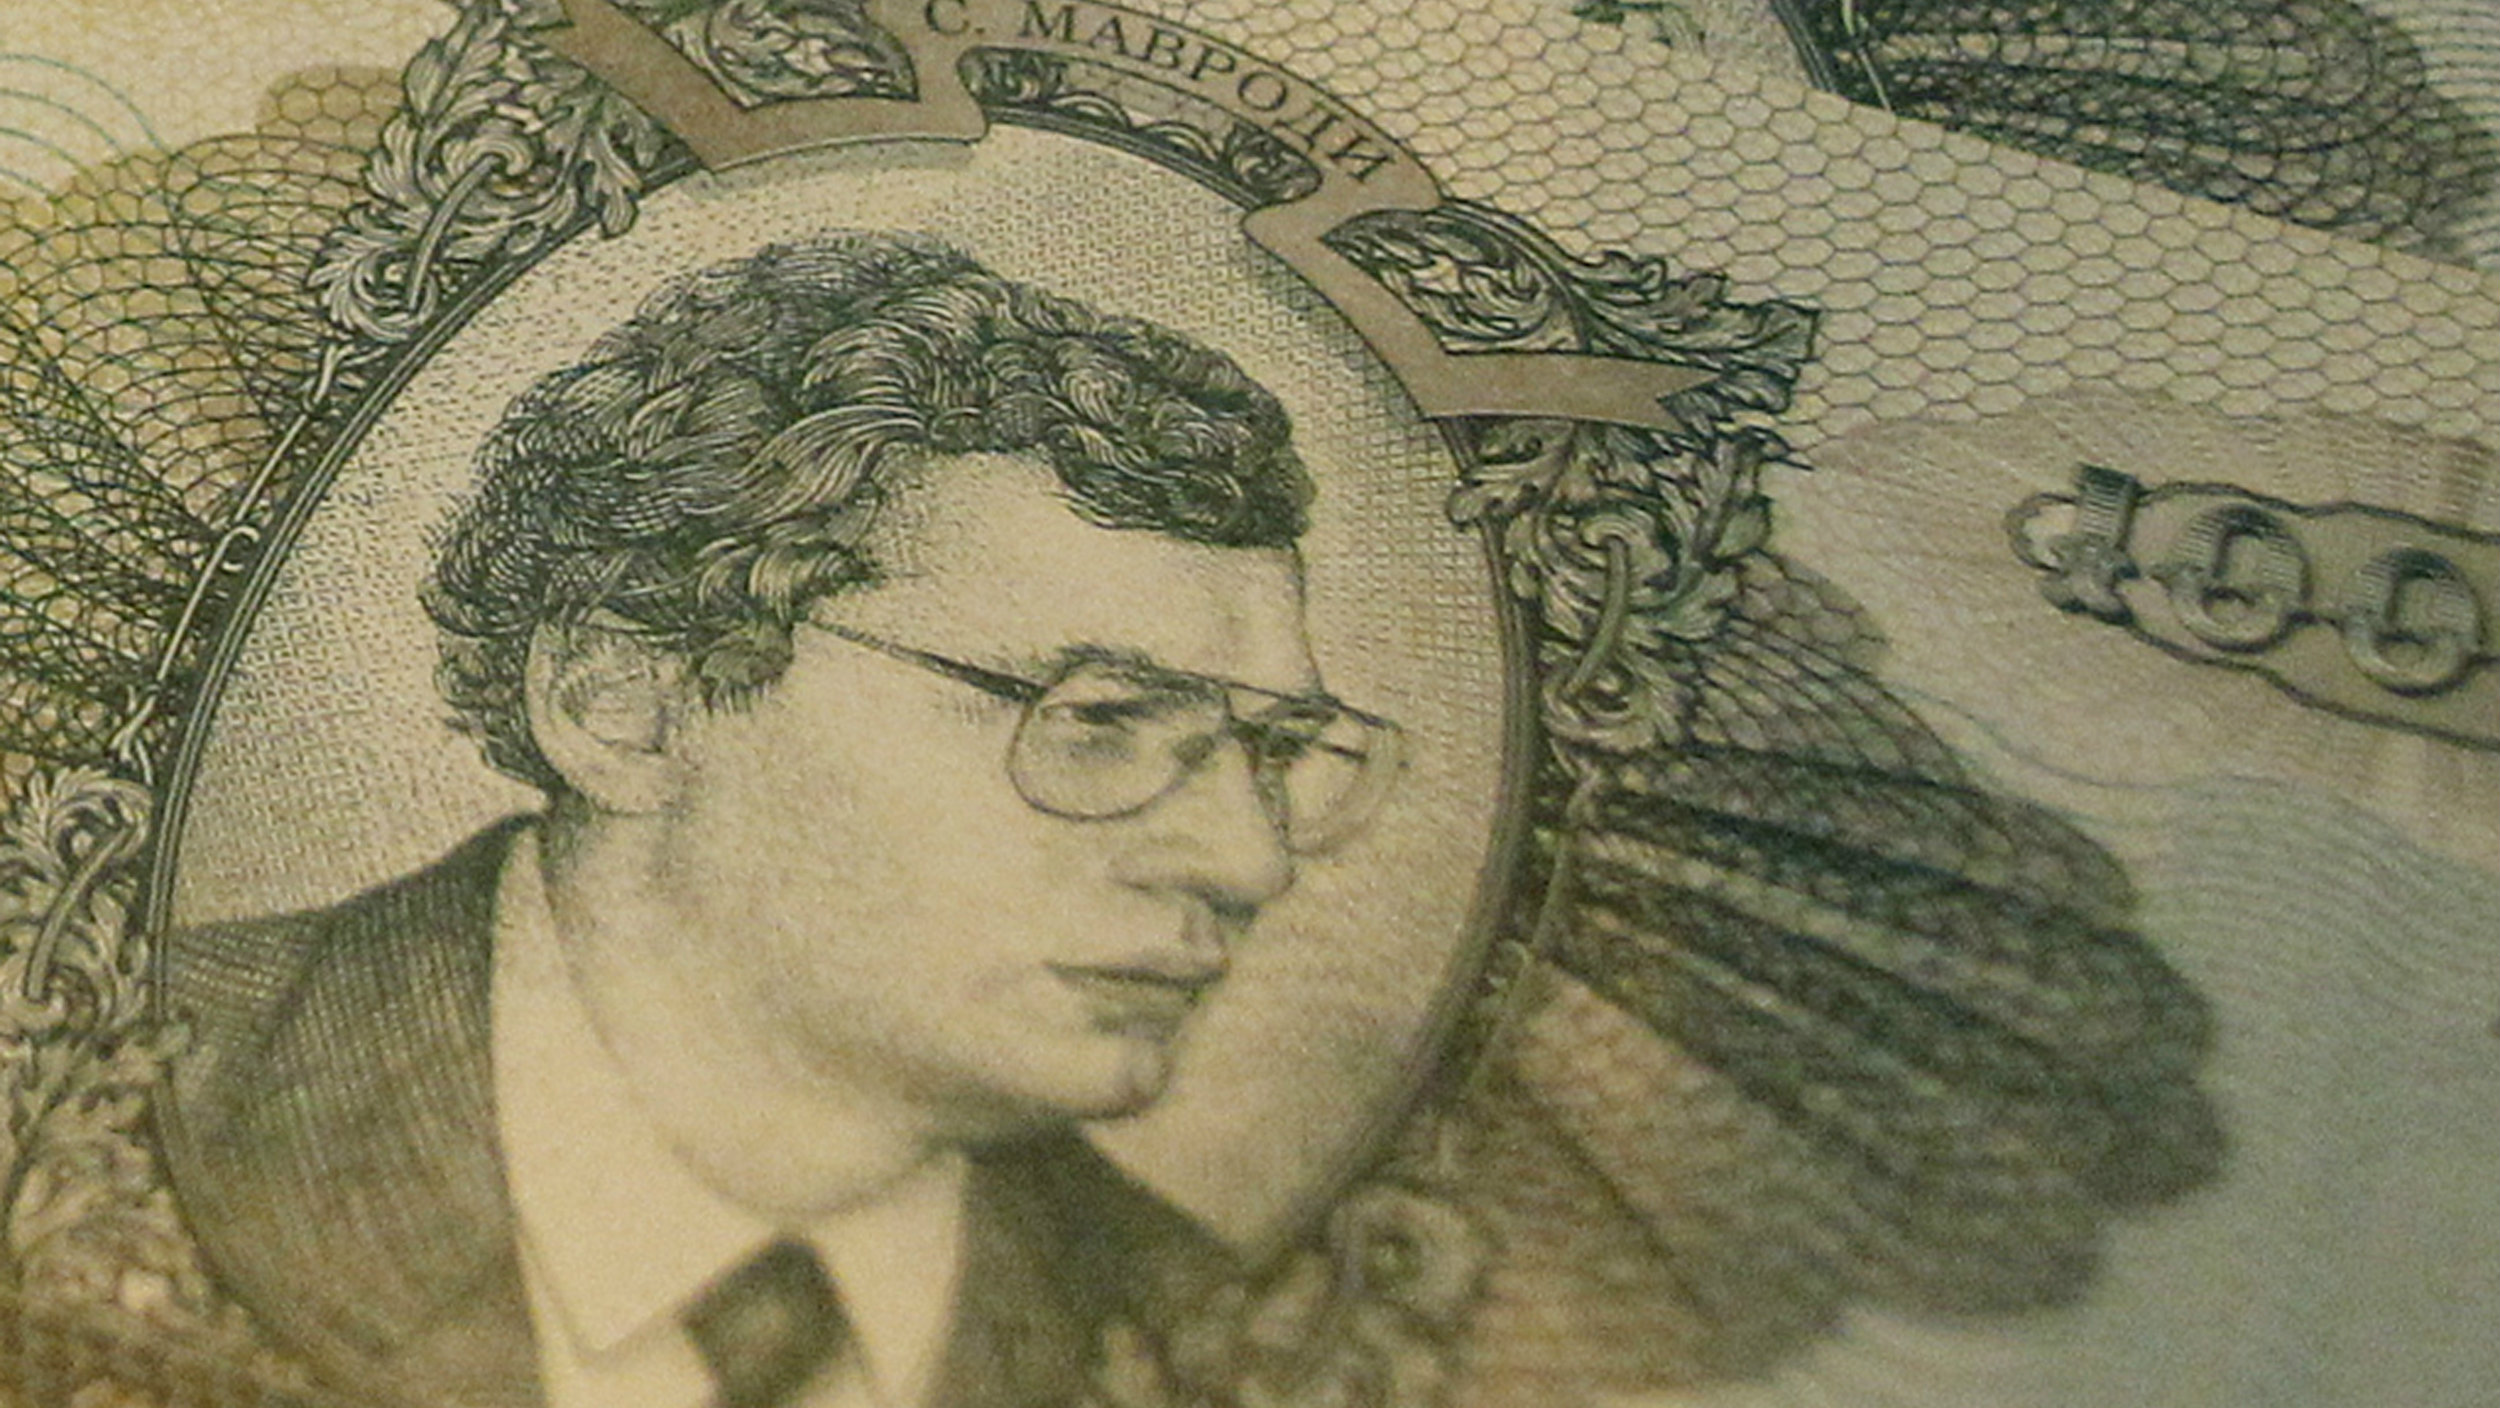 MMM equities or the so-called Mavrodi banknotes, produced by the company in the mid-1990's, are seen in the car of Andrei Emilianov, a promoter of the MMM financial project, in Moscow September 5, 2012. Picture taken September 5, 2012.